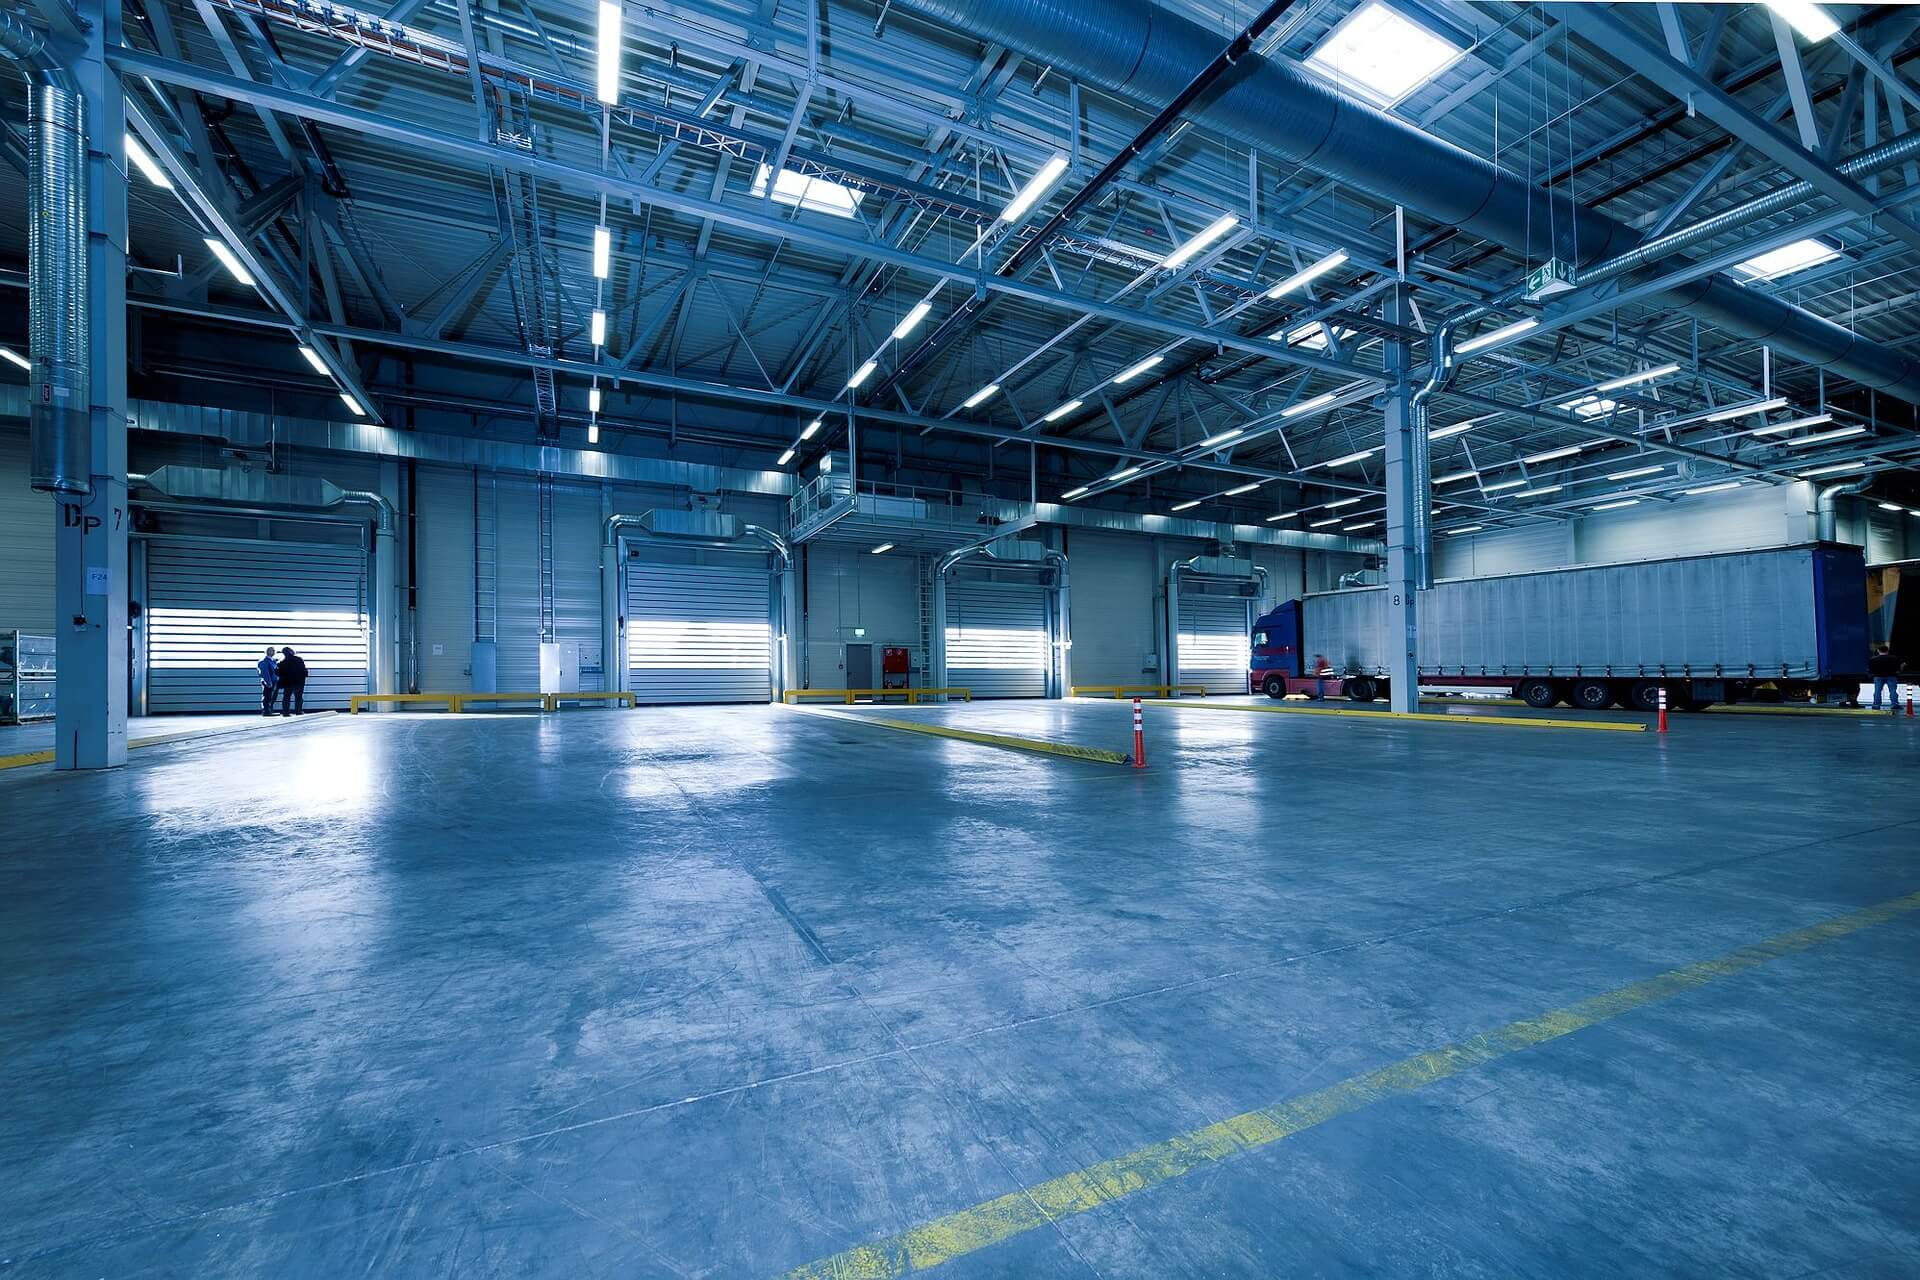 Why I Invest in Industrial Real Estate - Millionaire Doc